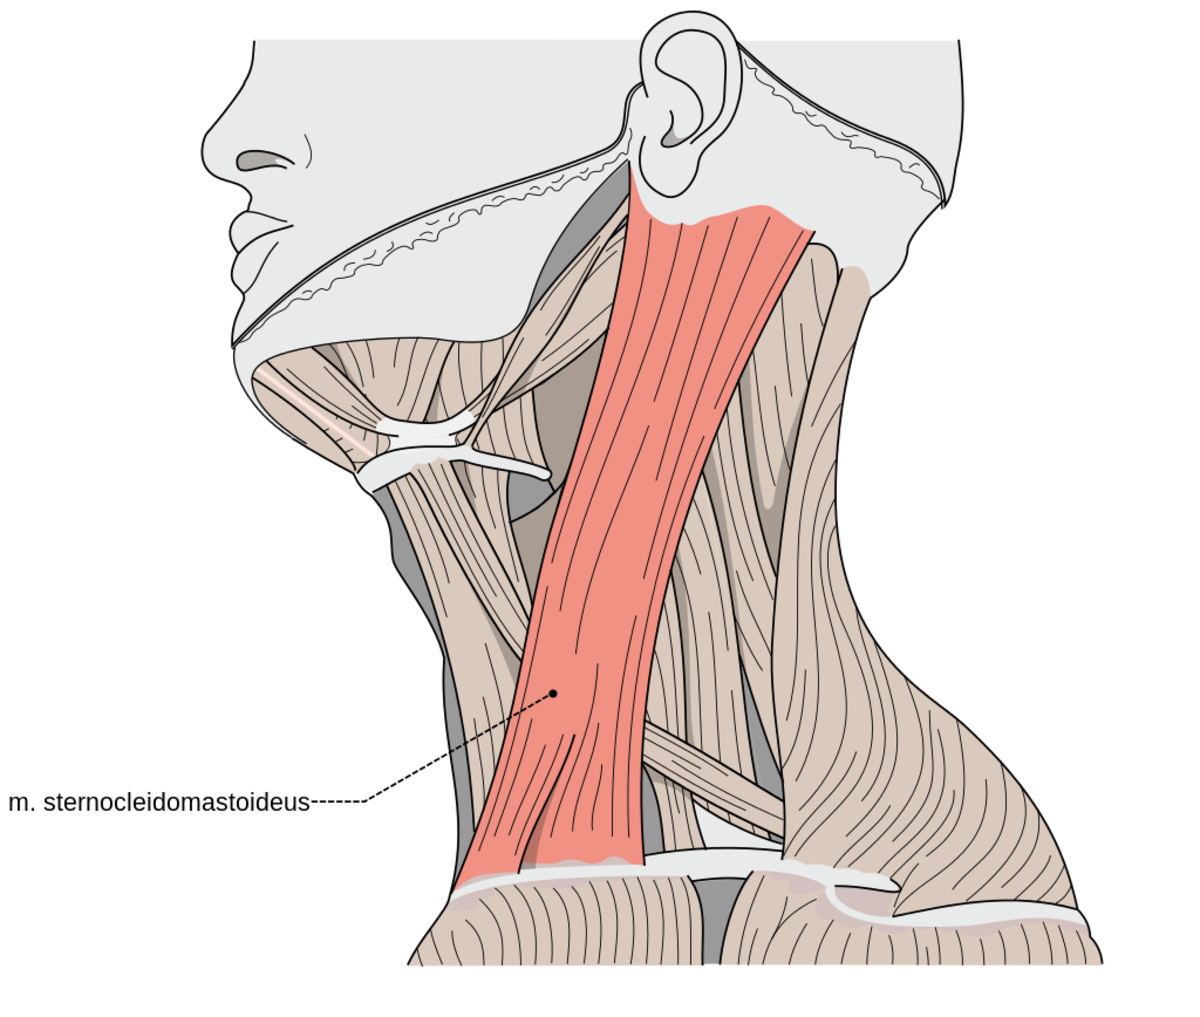 The Sternocleidomastoid Muscle A Culprit Of Widespread Muscle Pain